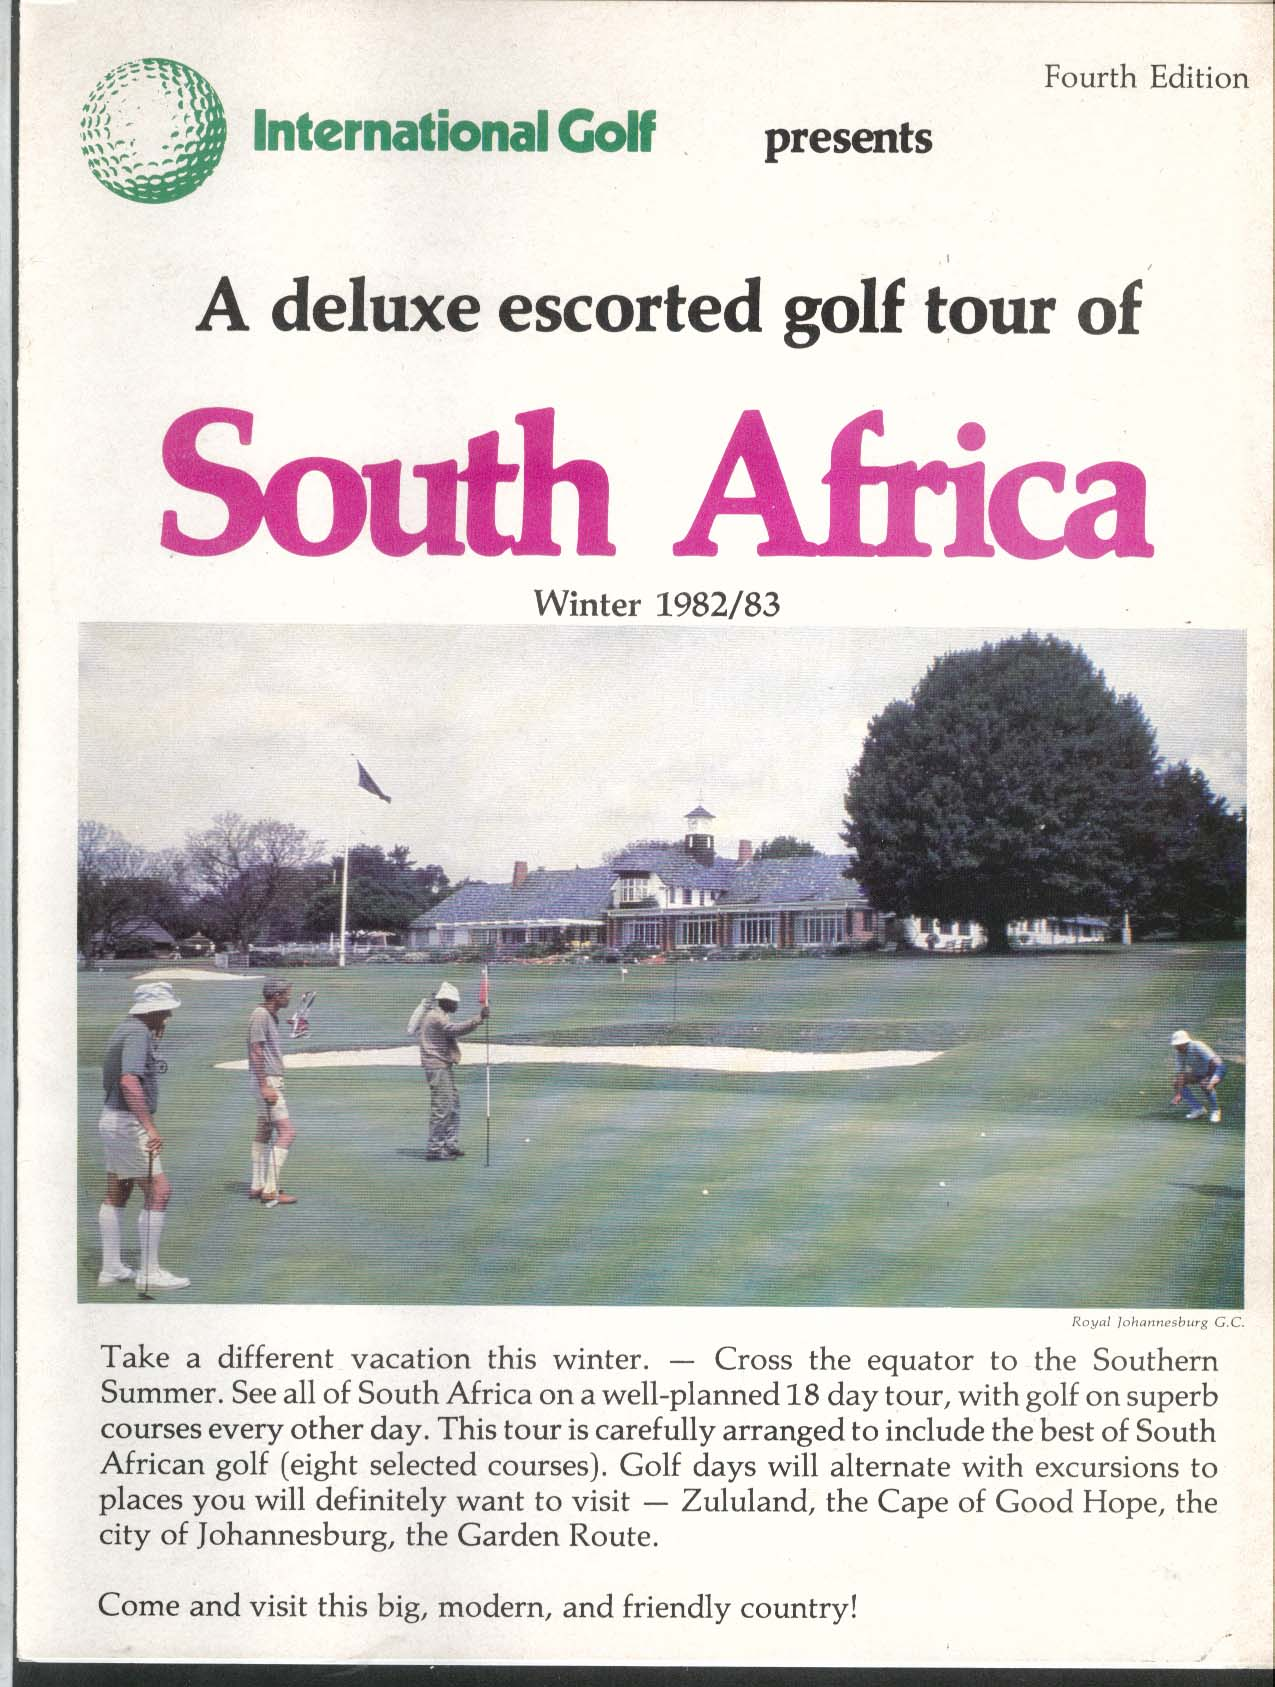 International Golf deluxe escorted golf tour of South Africa Winter 1982 1983